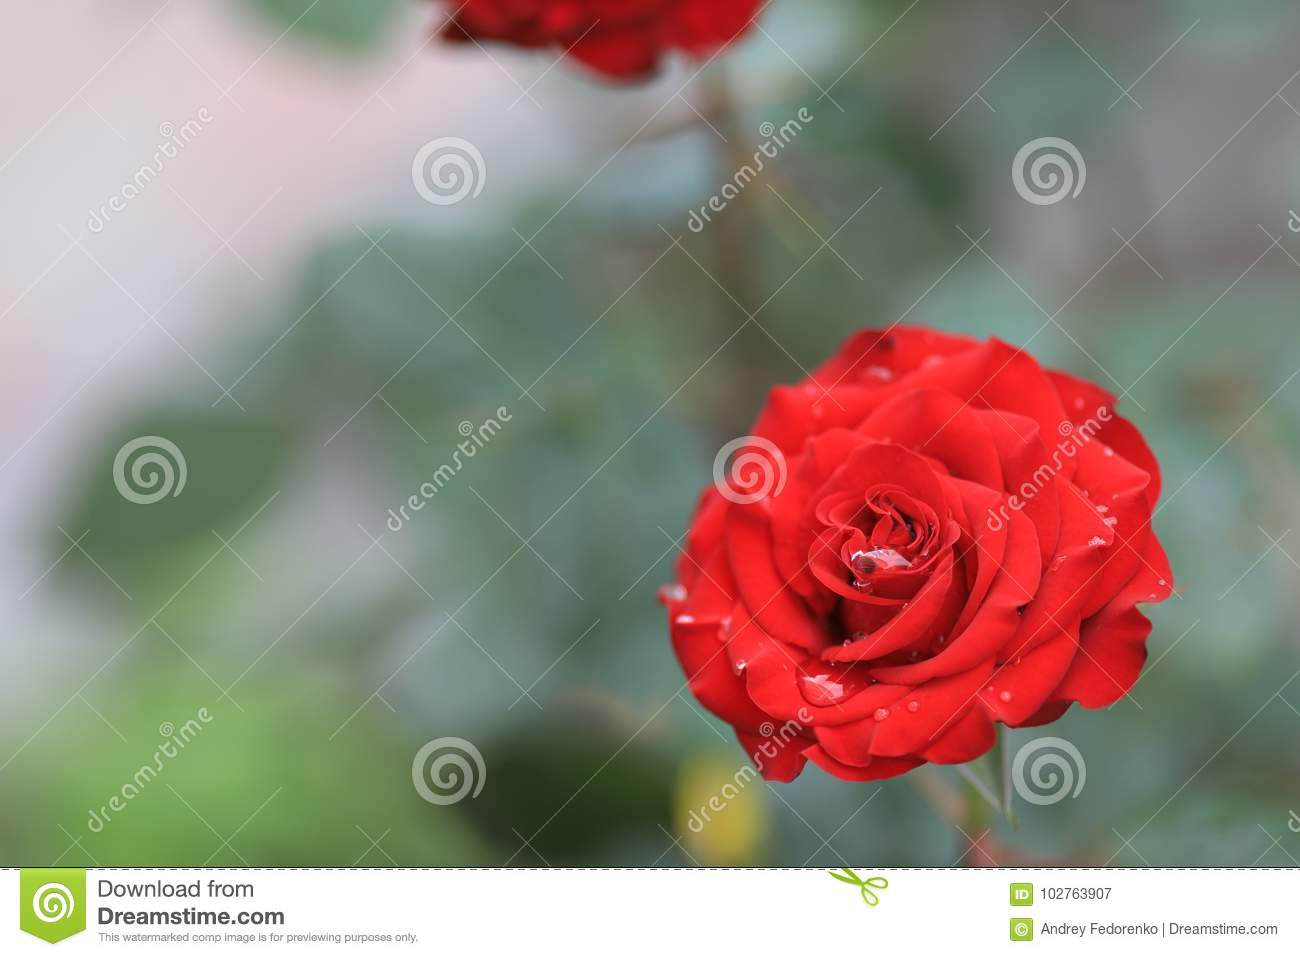 a red red rose meaning